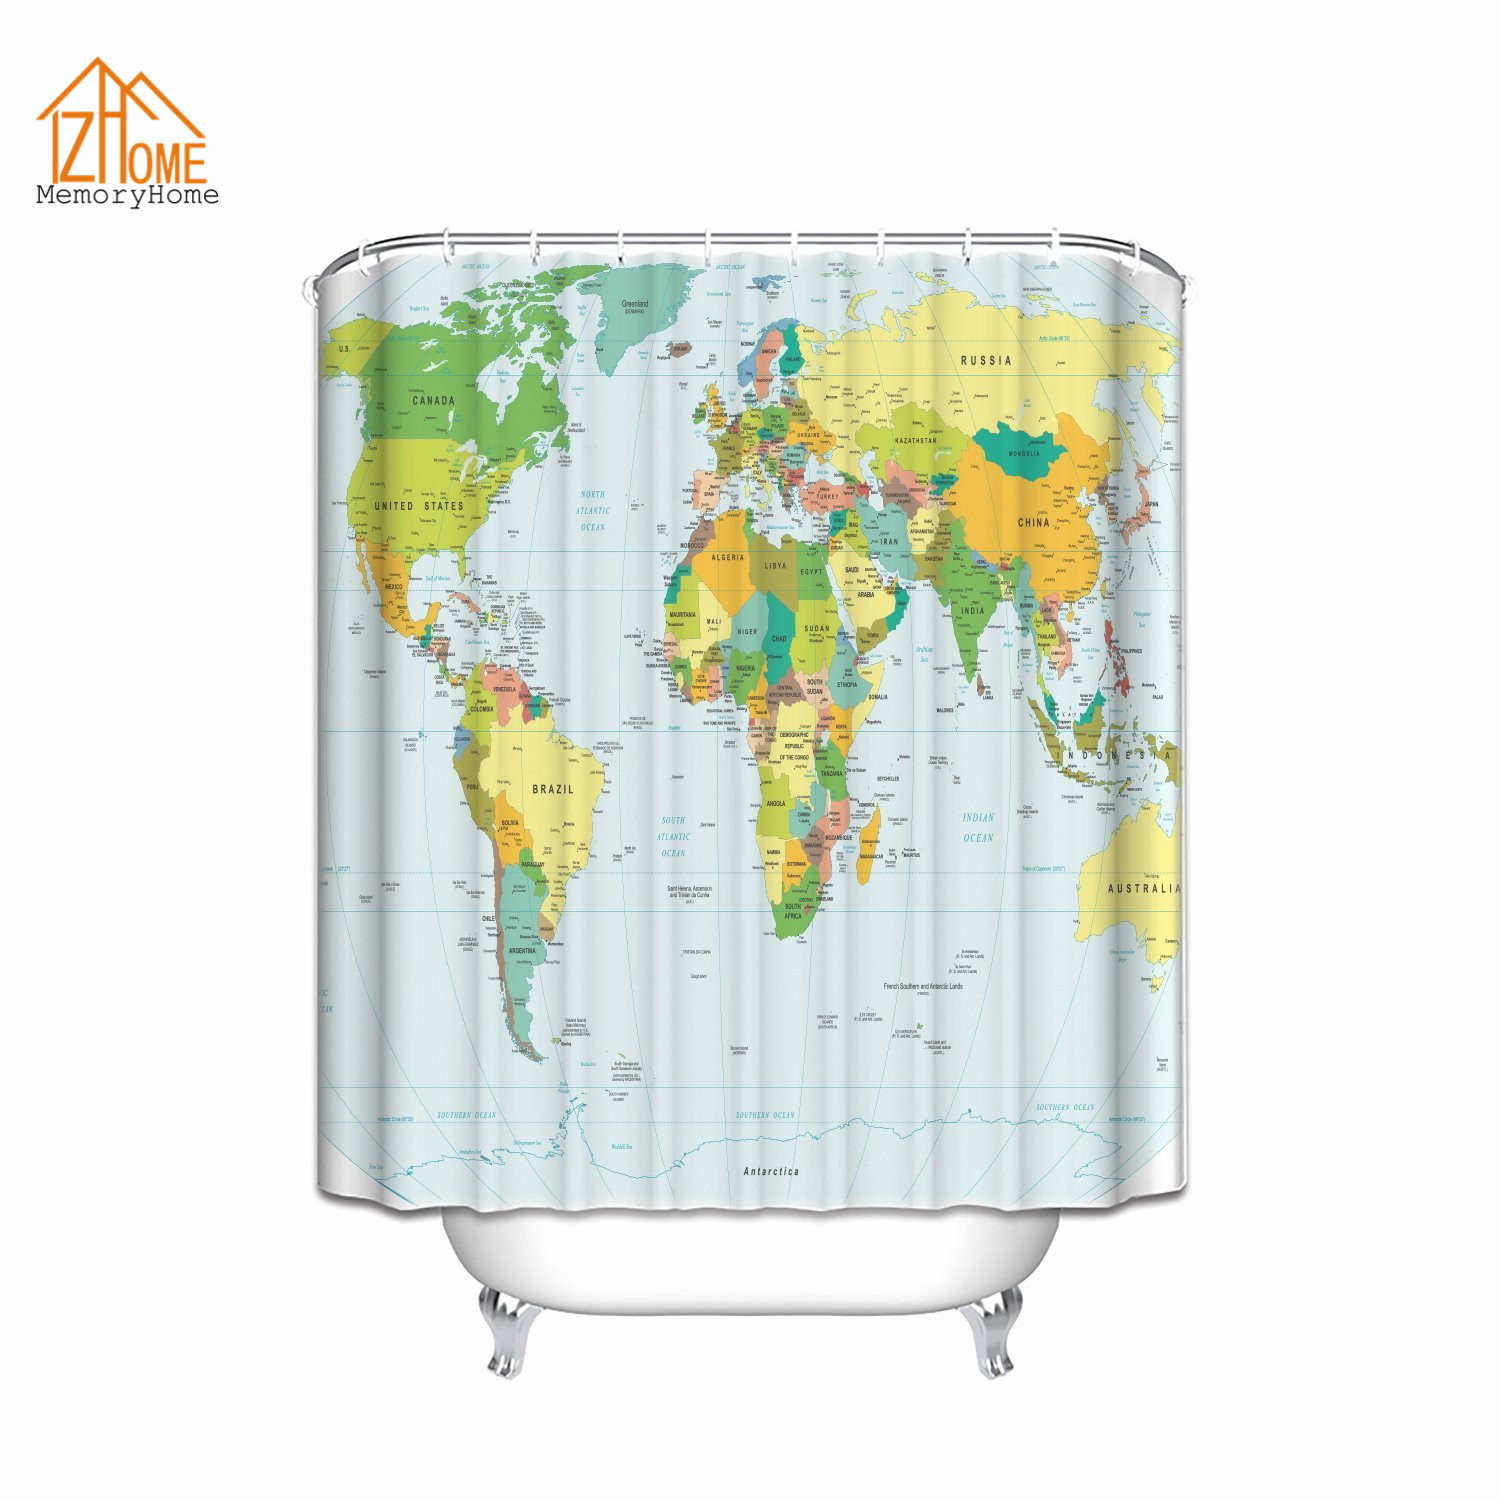 popular novelty shower curtainbuy cheap novelty shower curtain  - memory home world map print educational geographical earth in my bathroomocean novelty home decor fabric